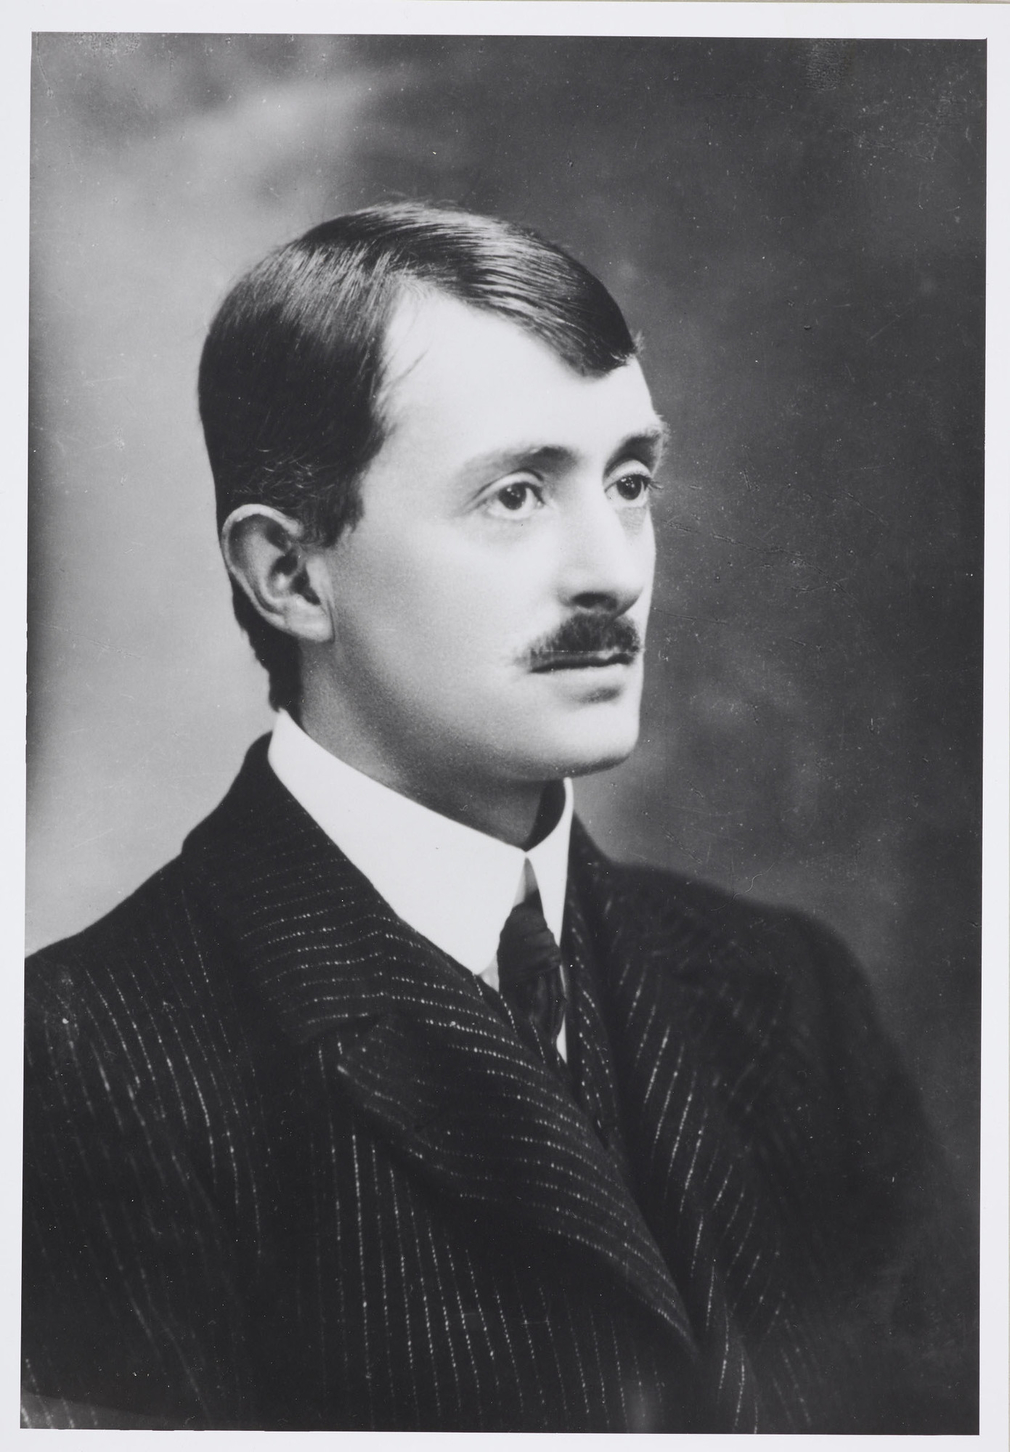 Photograph of a head and shoulders length portrait of the Poet Laureate and holder of the Order of Merit, John Masefield. He faces three-quarters right and wears a dark jacket, white shirt and tie.